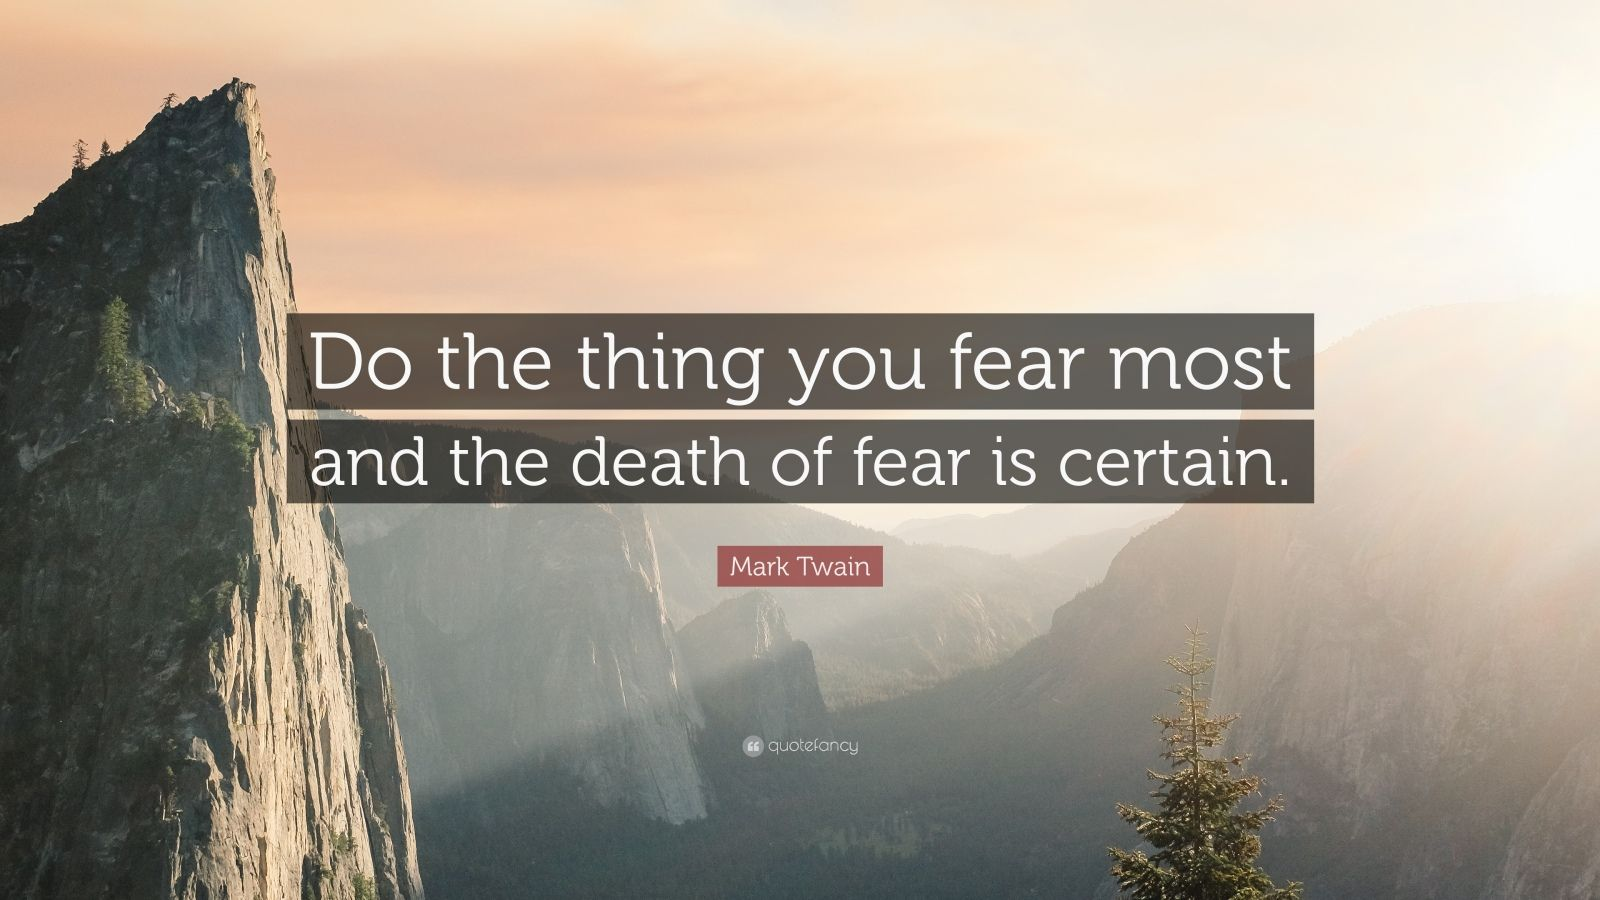 Do the thing you fear most and the death of fear is certain essay